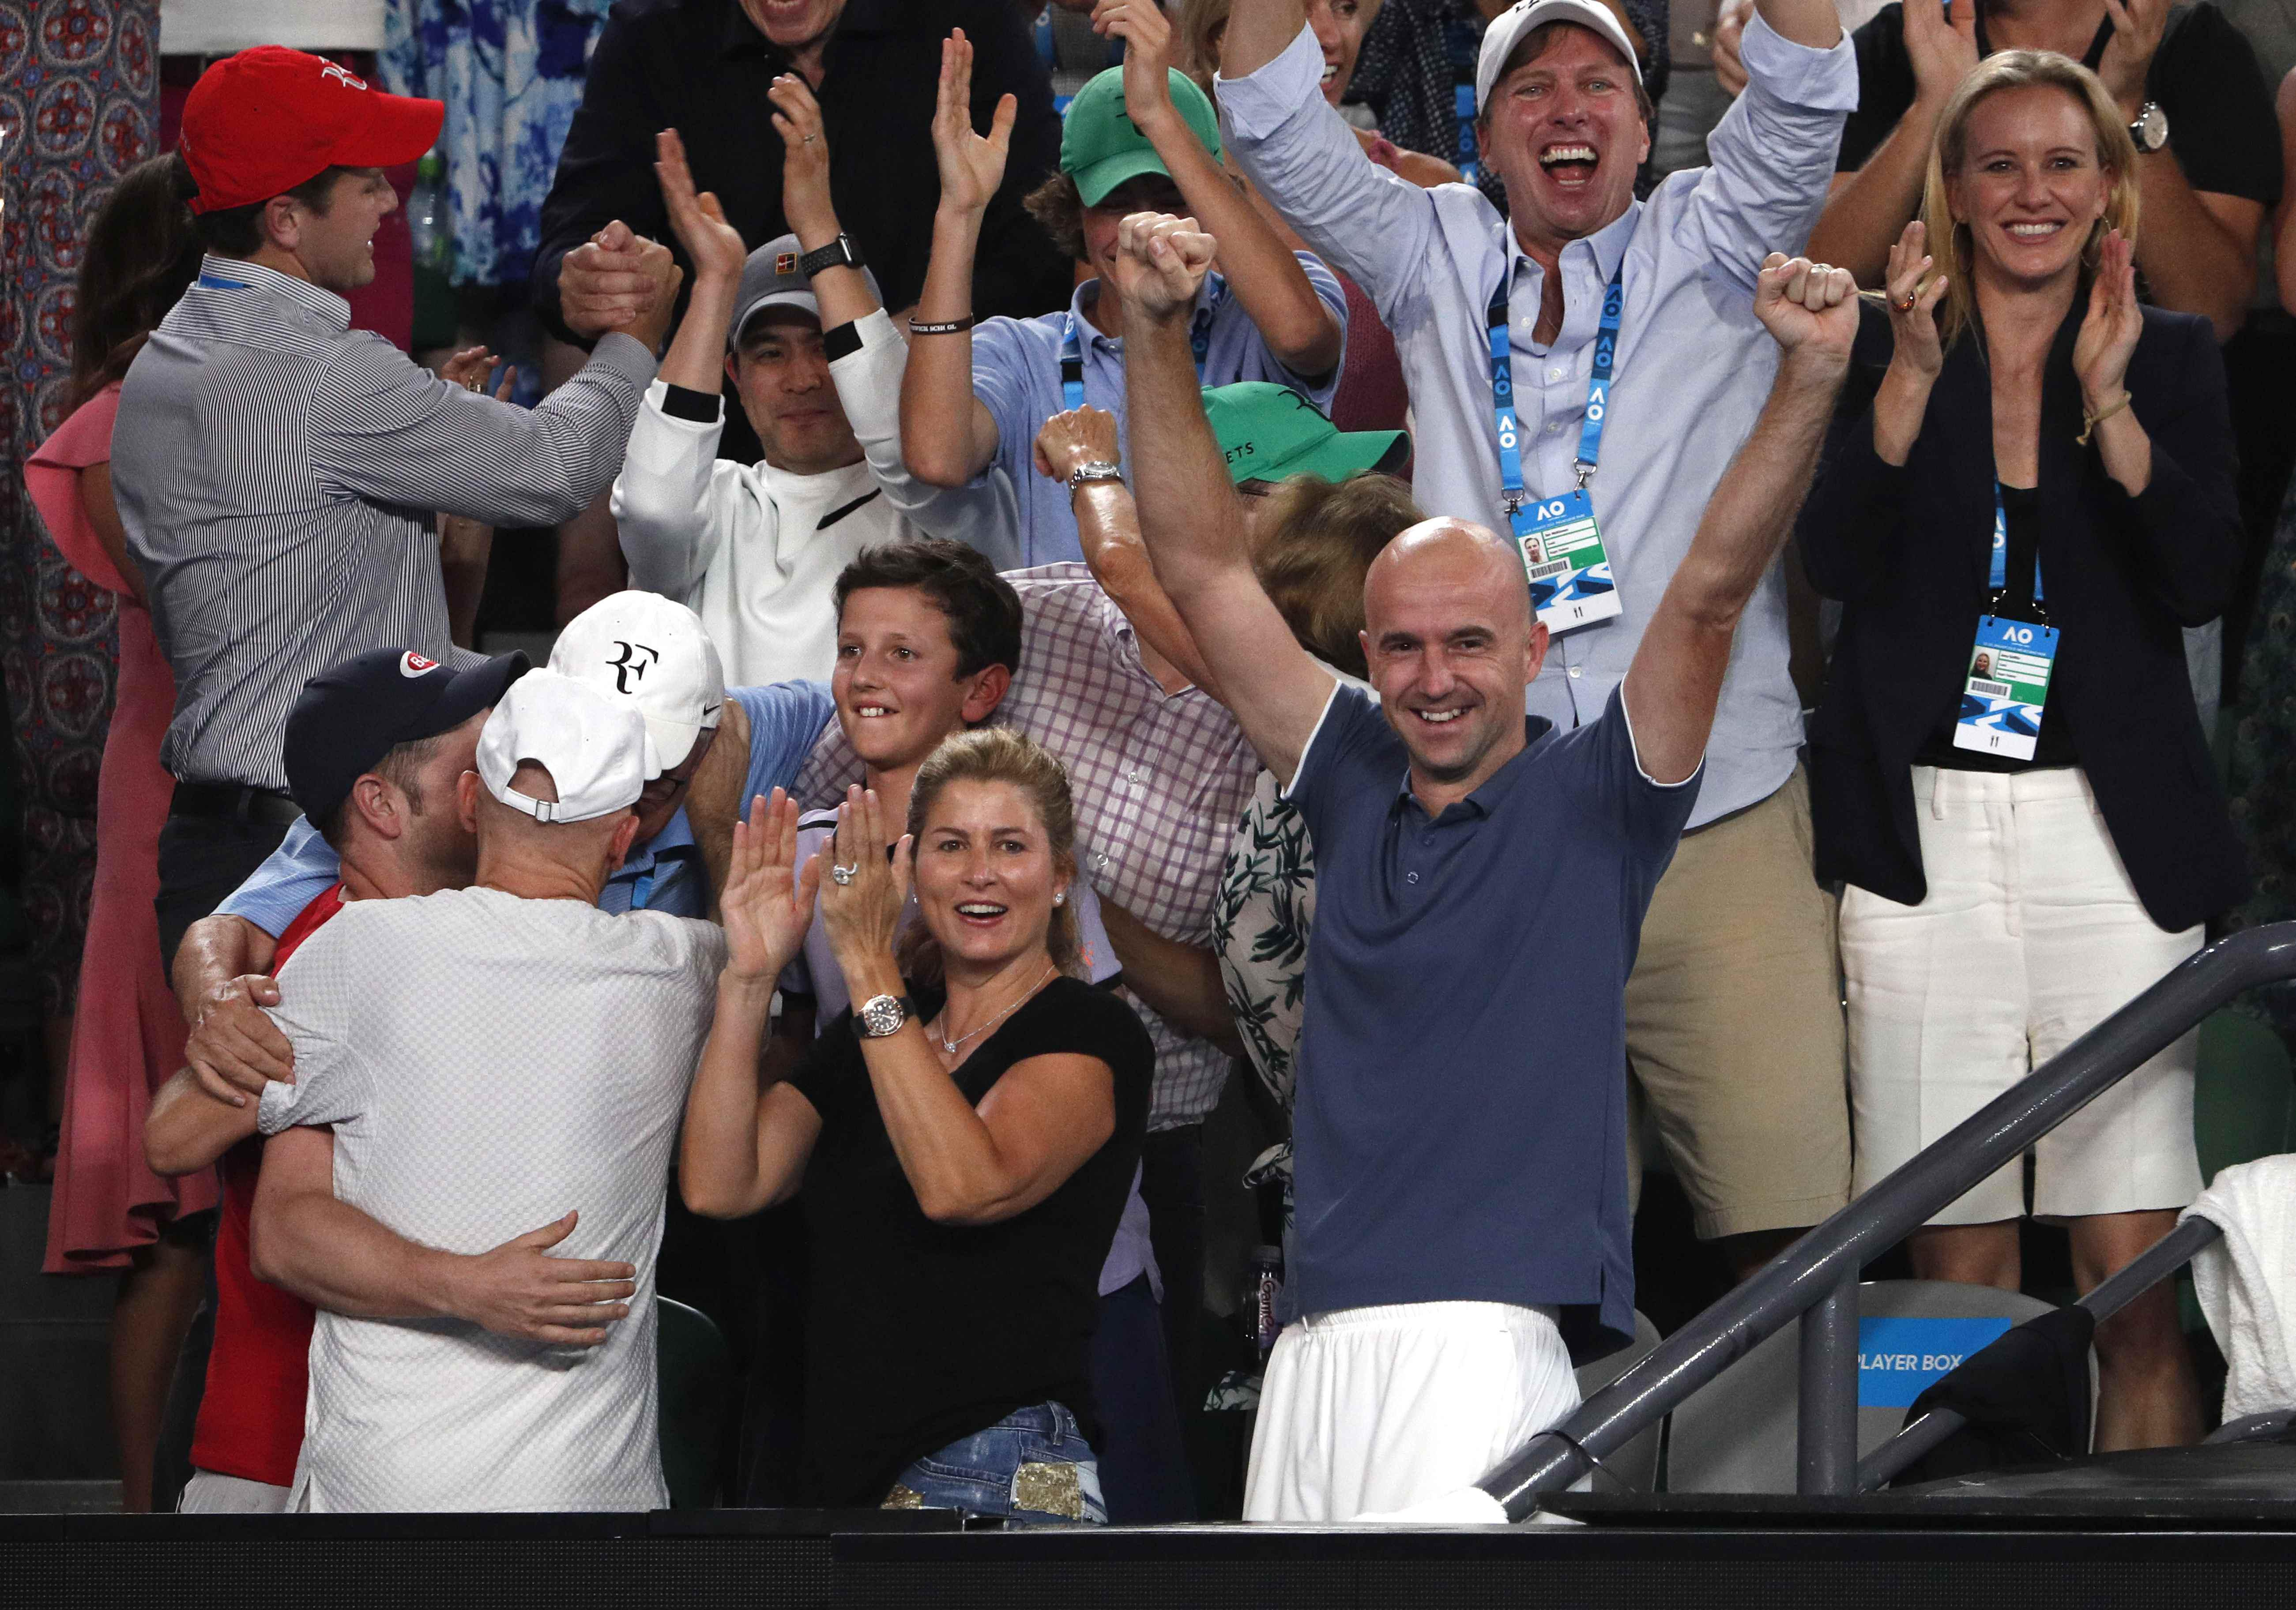 Federer's wife Mirka and coach Ivan Ljubicic were on hand to watch as he made history